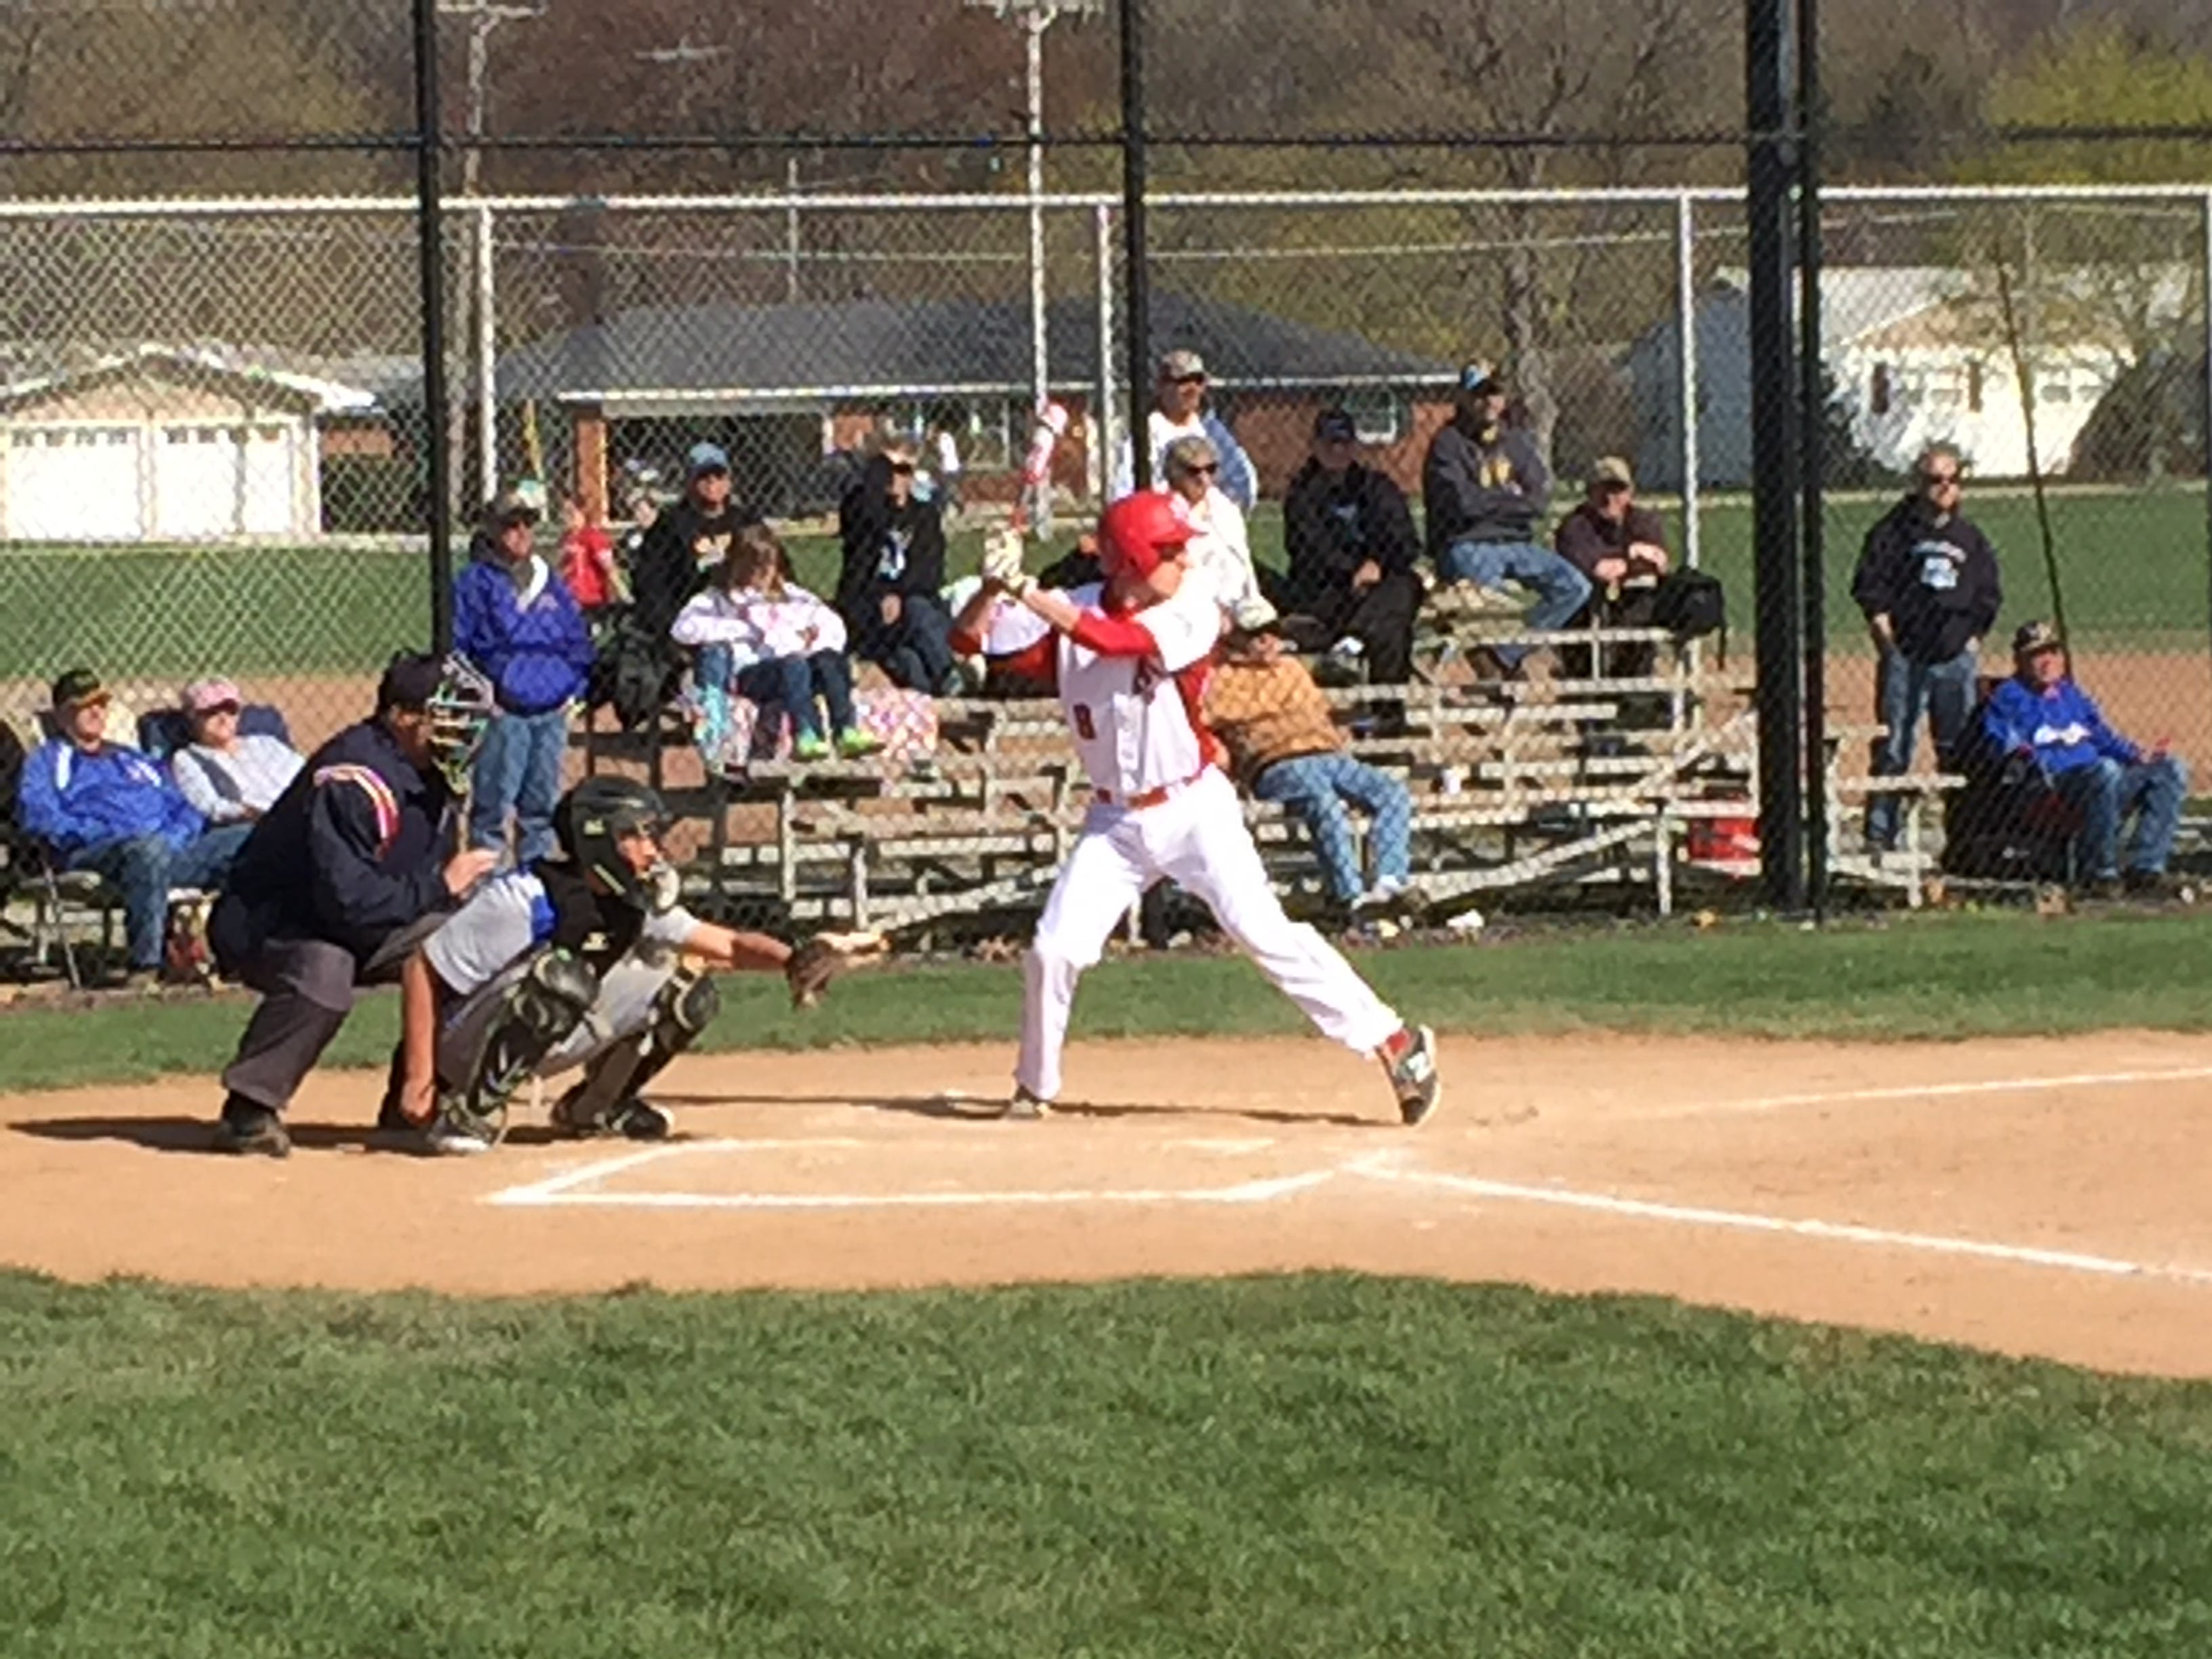 Port Clinton's Seth Monk waits on a pitch Friday against Clyde.